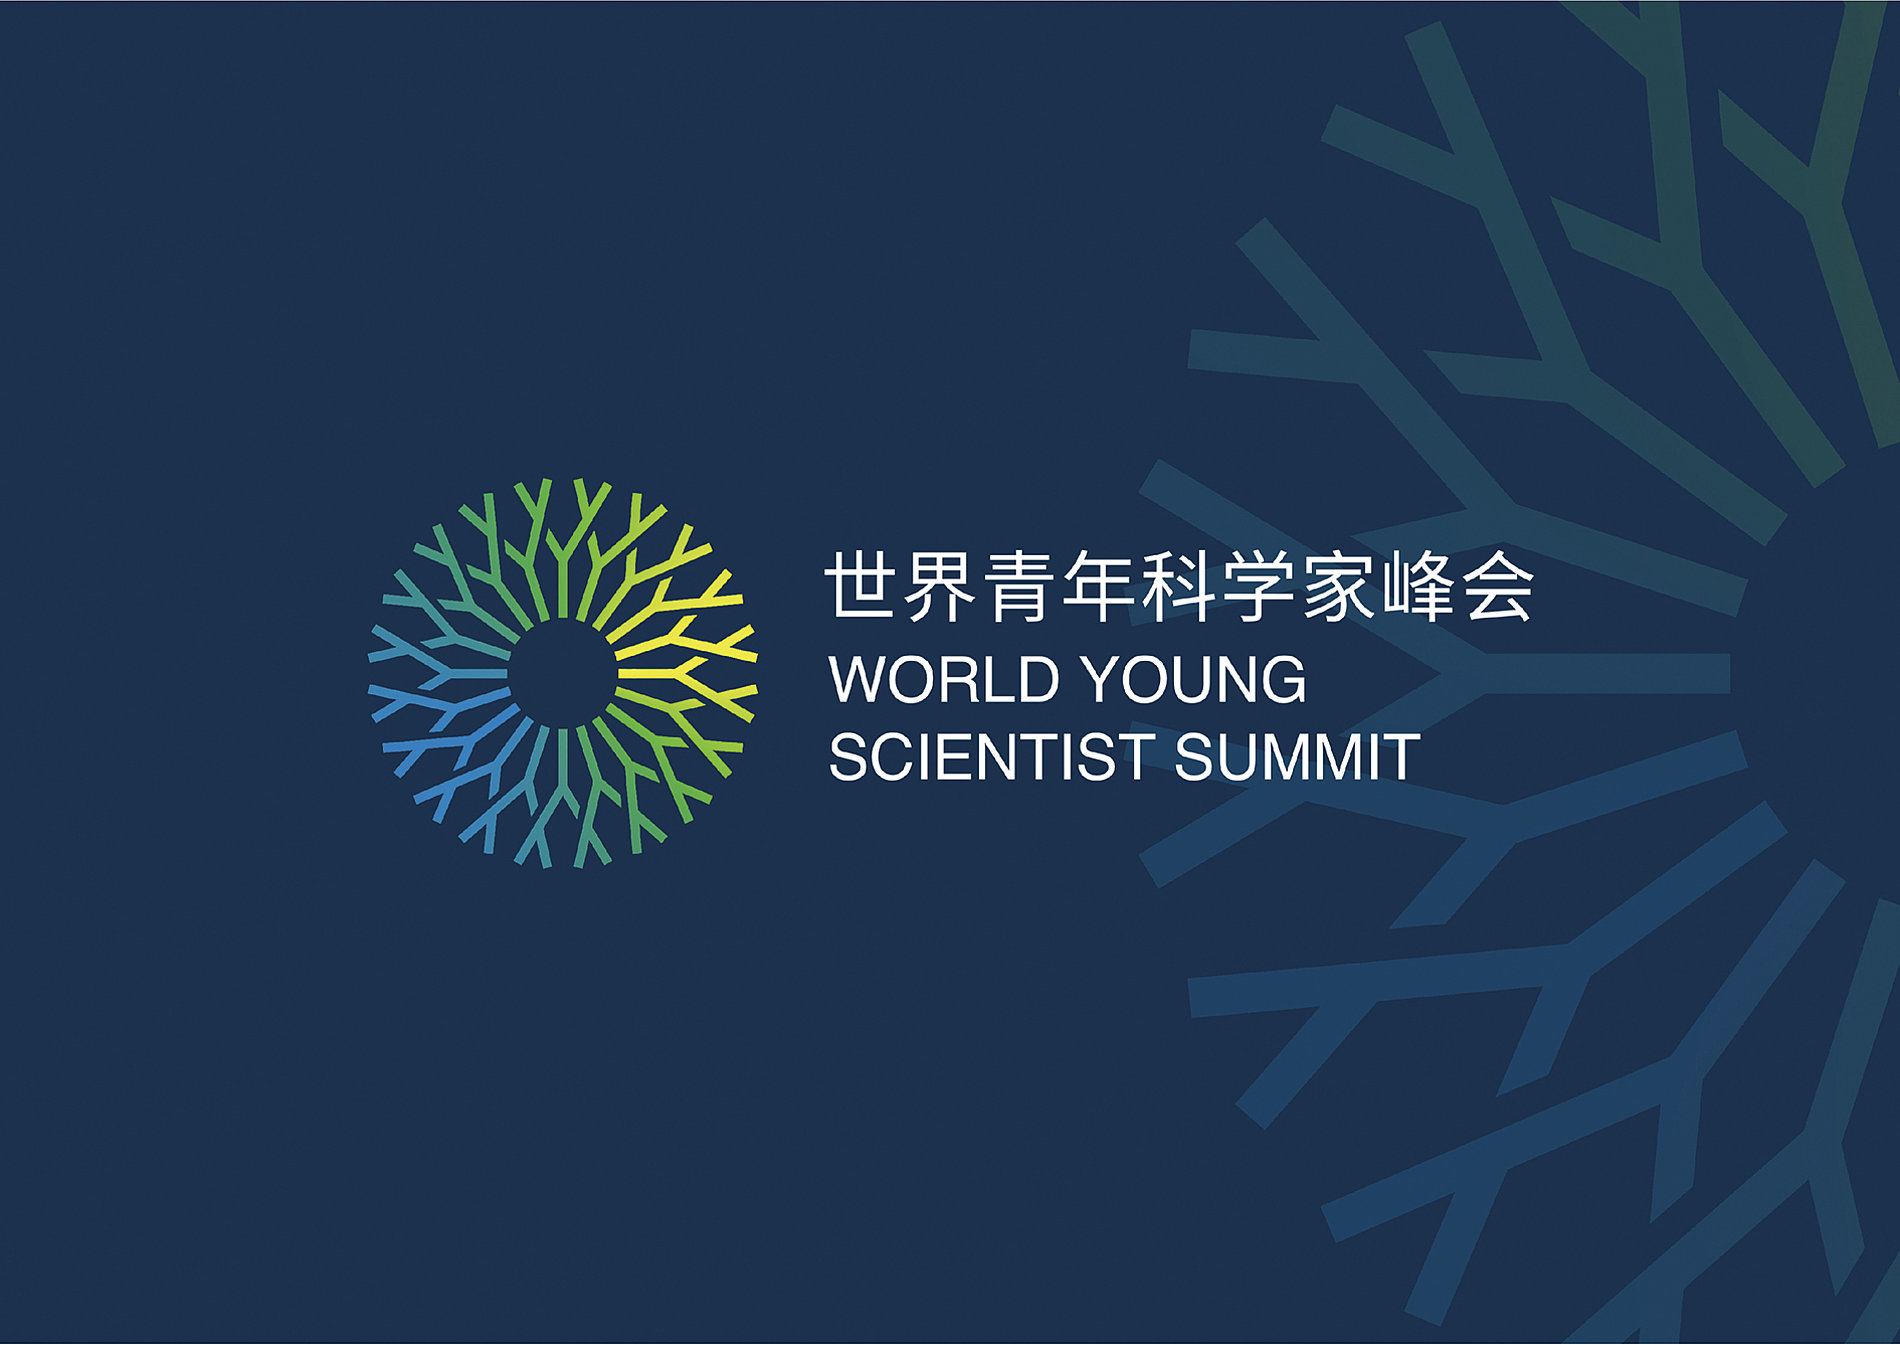 World Young Scientist Summit | Red Dot Design Award